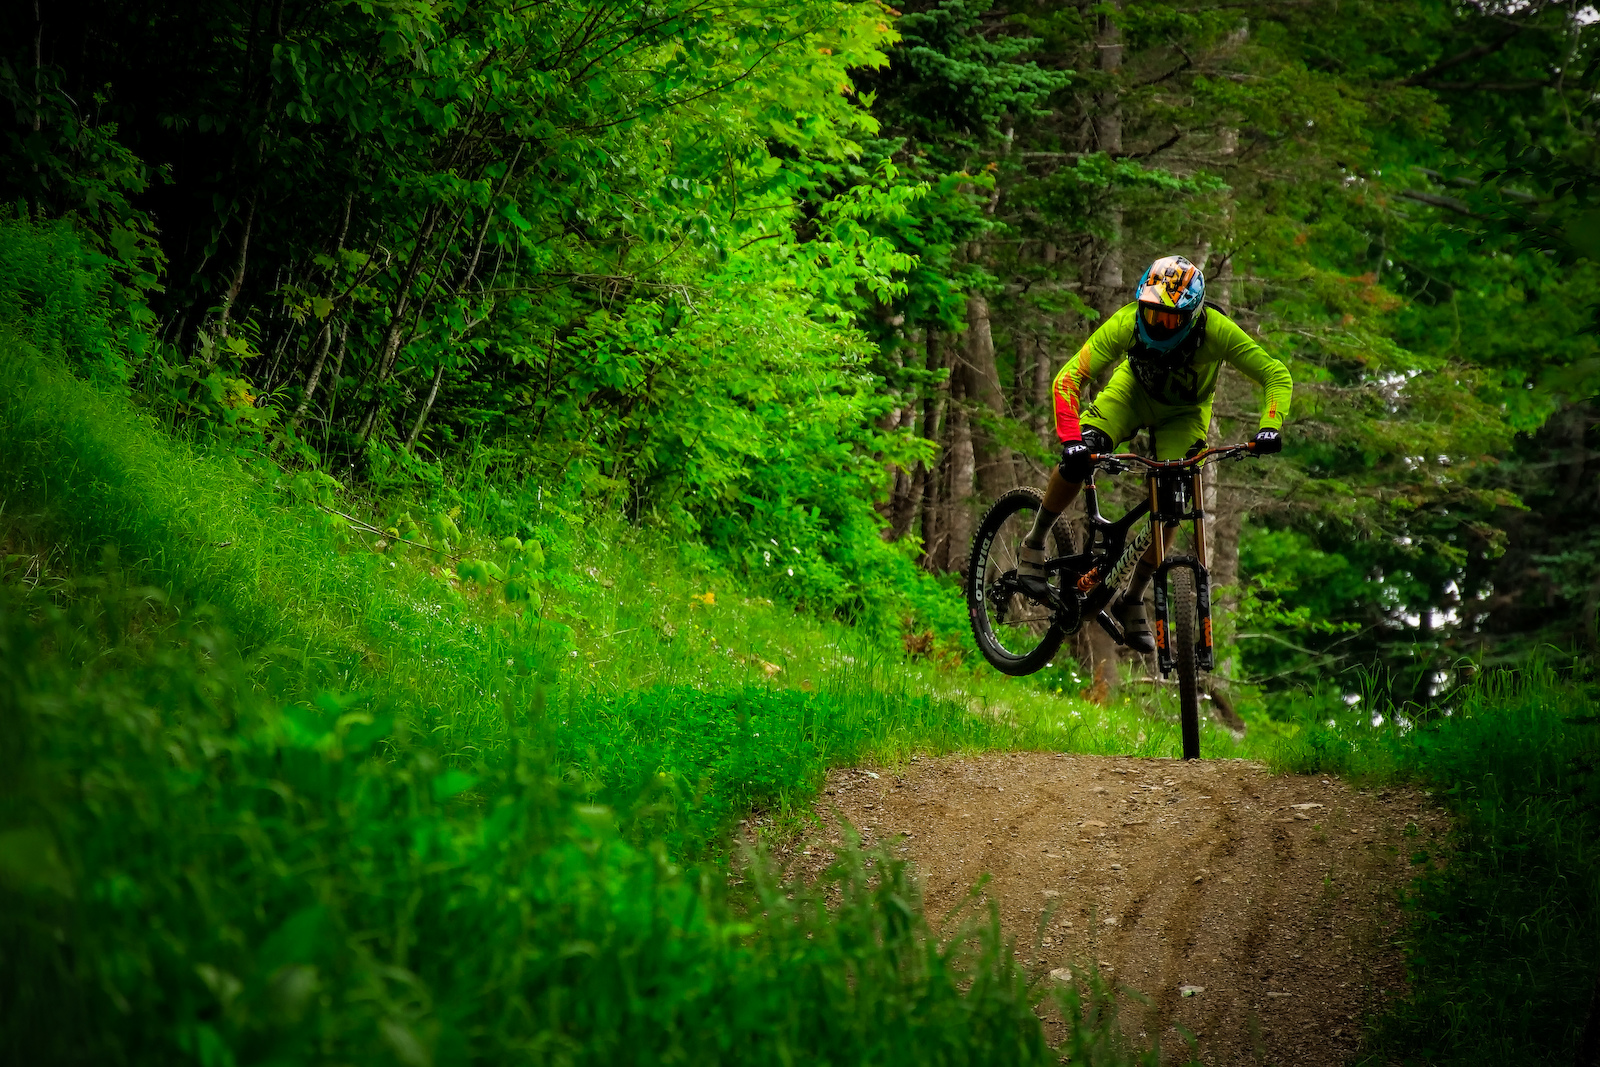 Photos from Let Em Eat story in Killington Vermont.